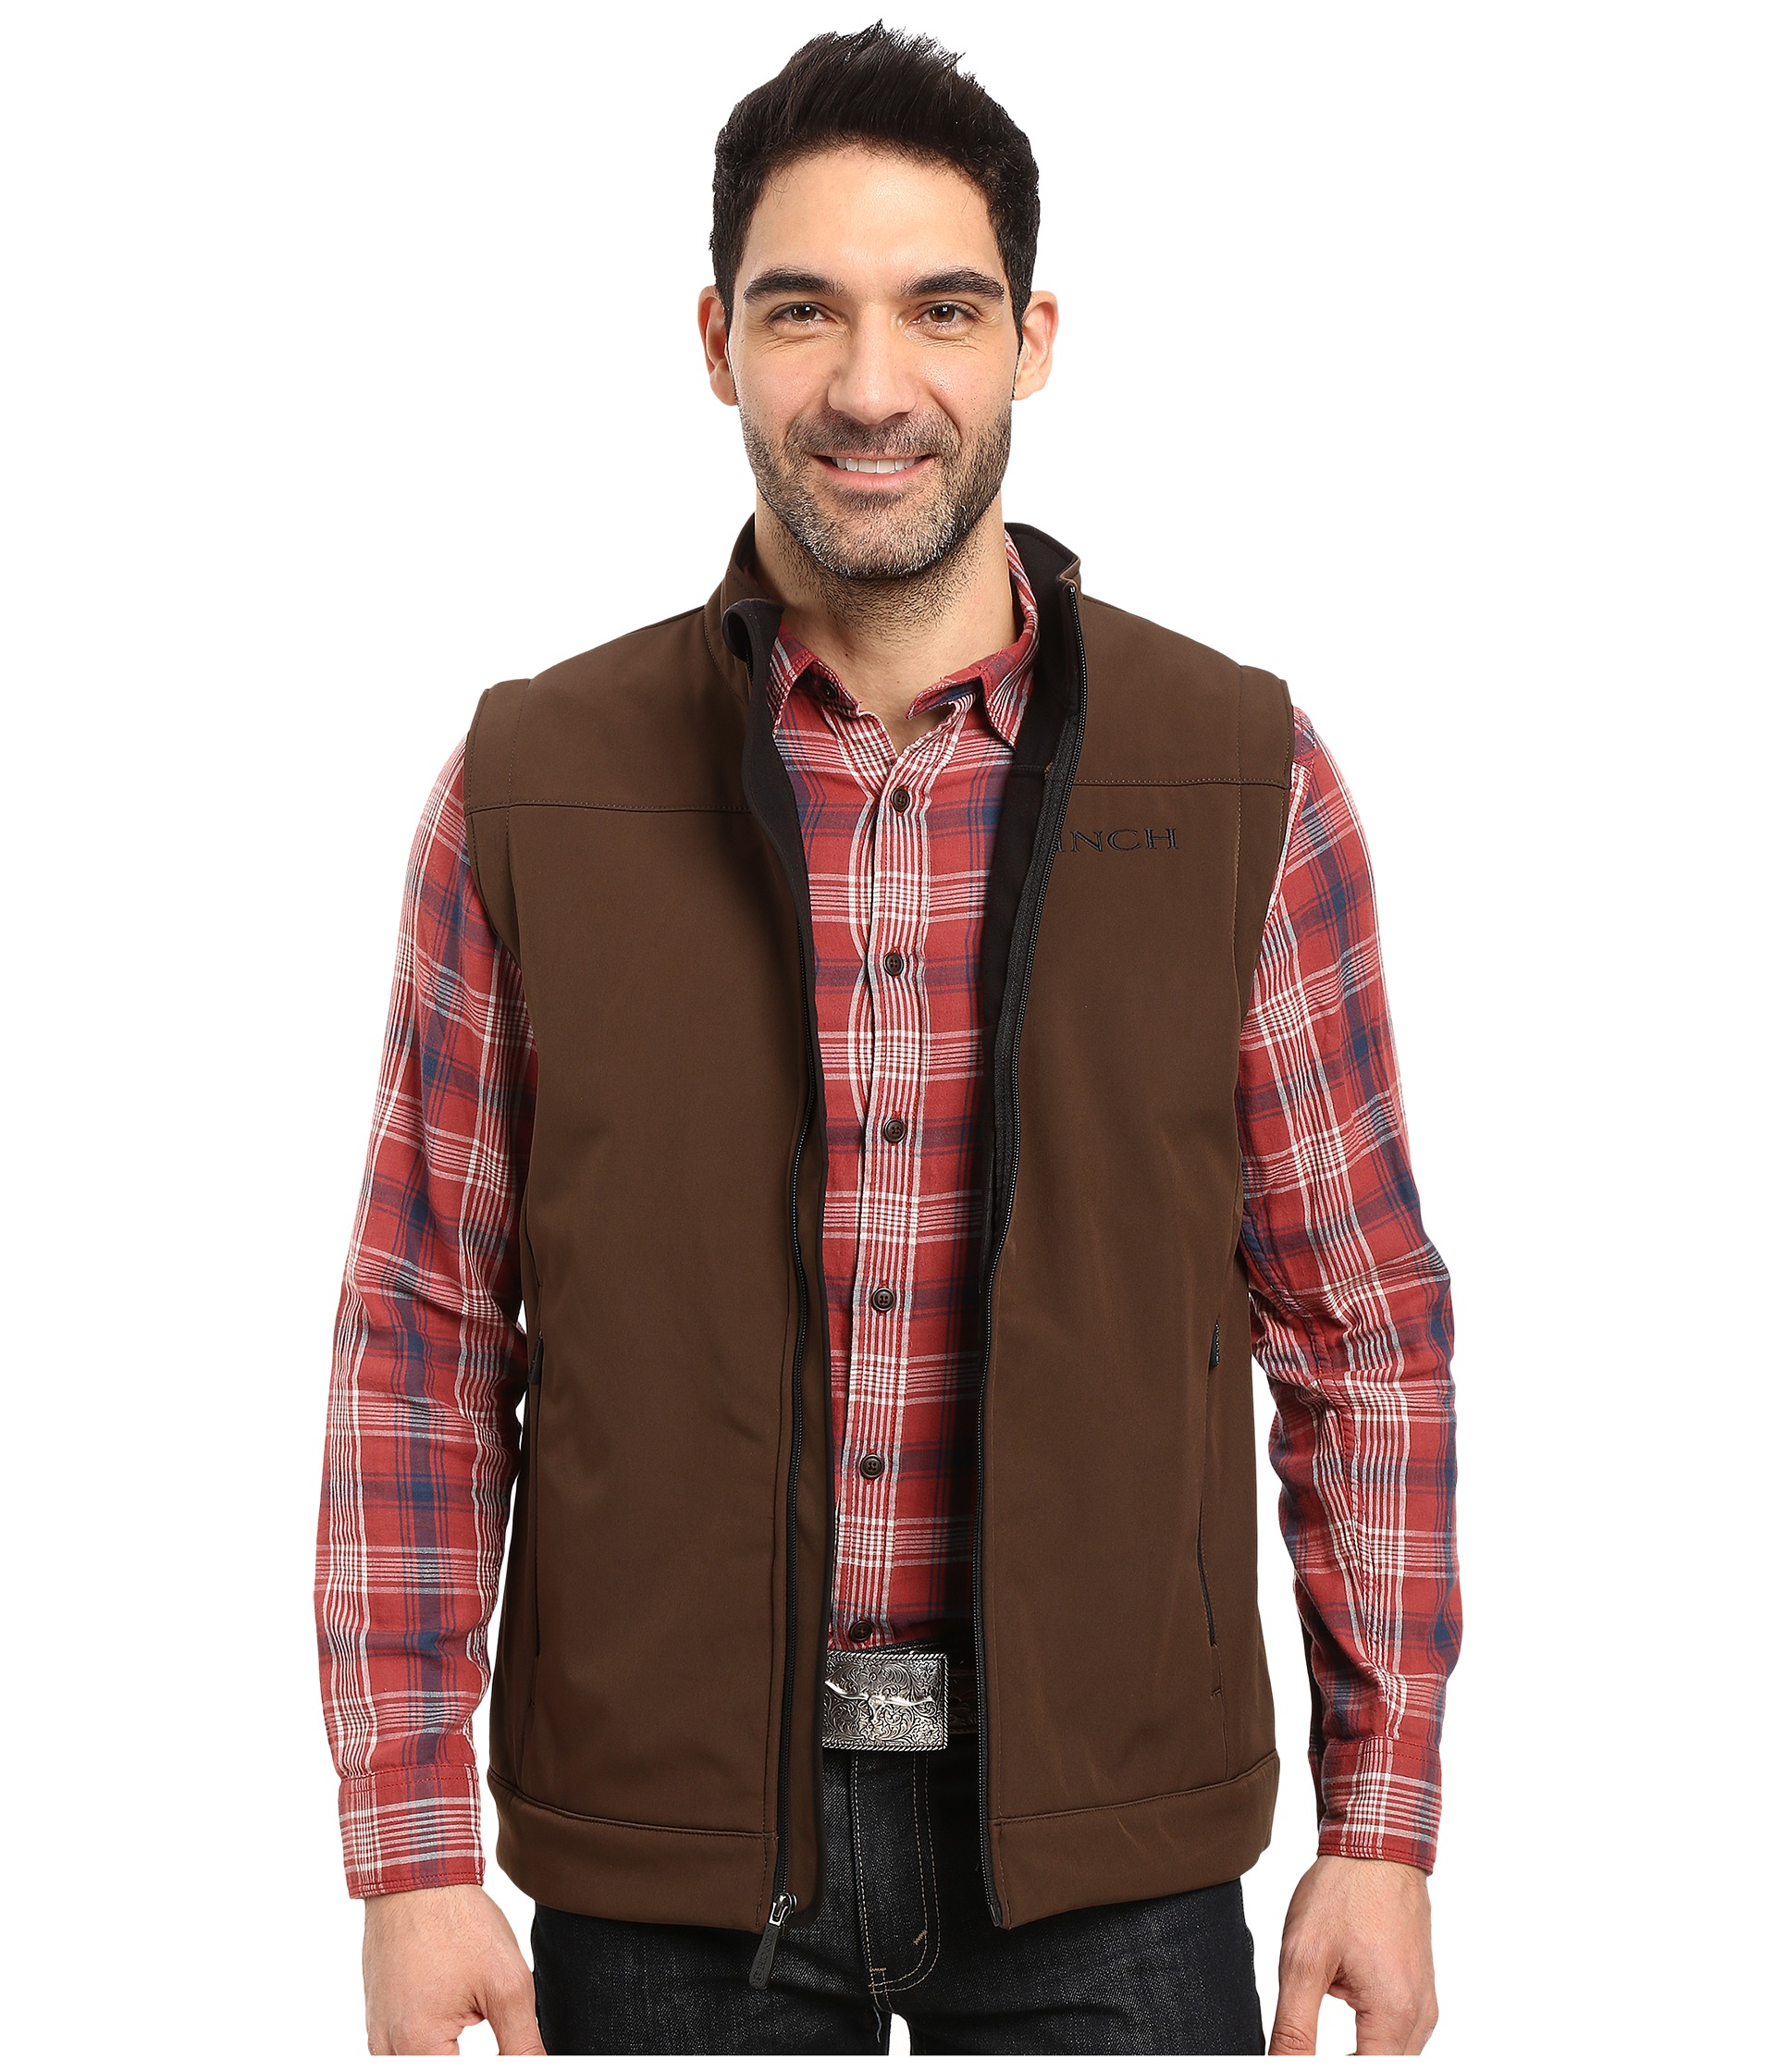 Mens Color Blocked Quilted Down Vest - Brown/Tan. $ Mens Hounds Tooth Puffer Vest - Brown/Black.